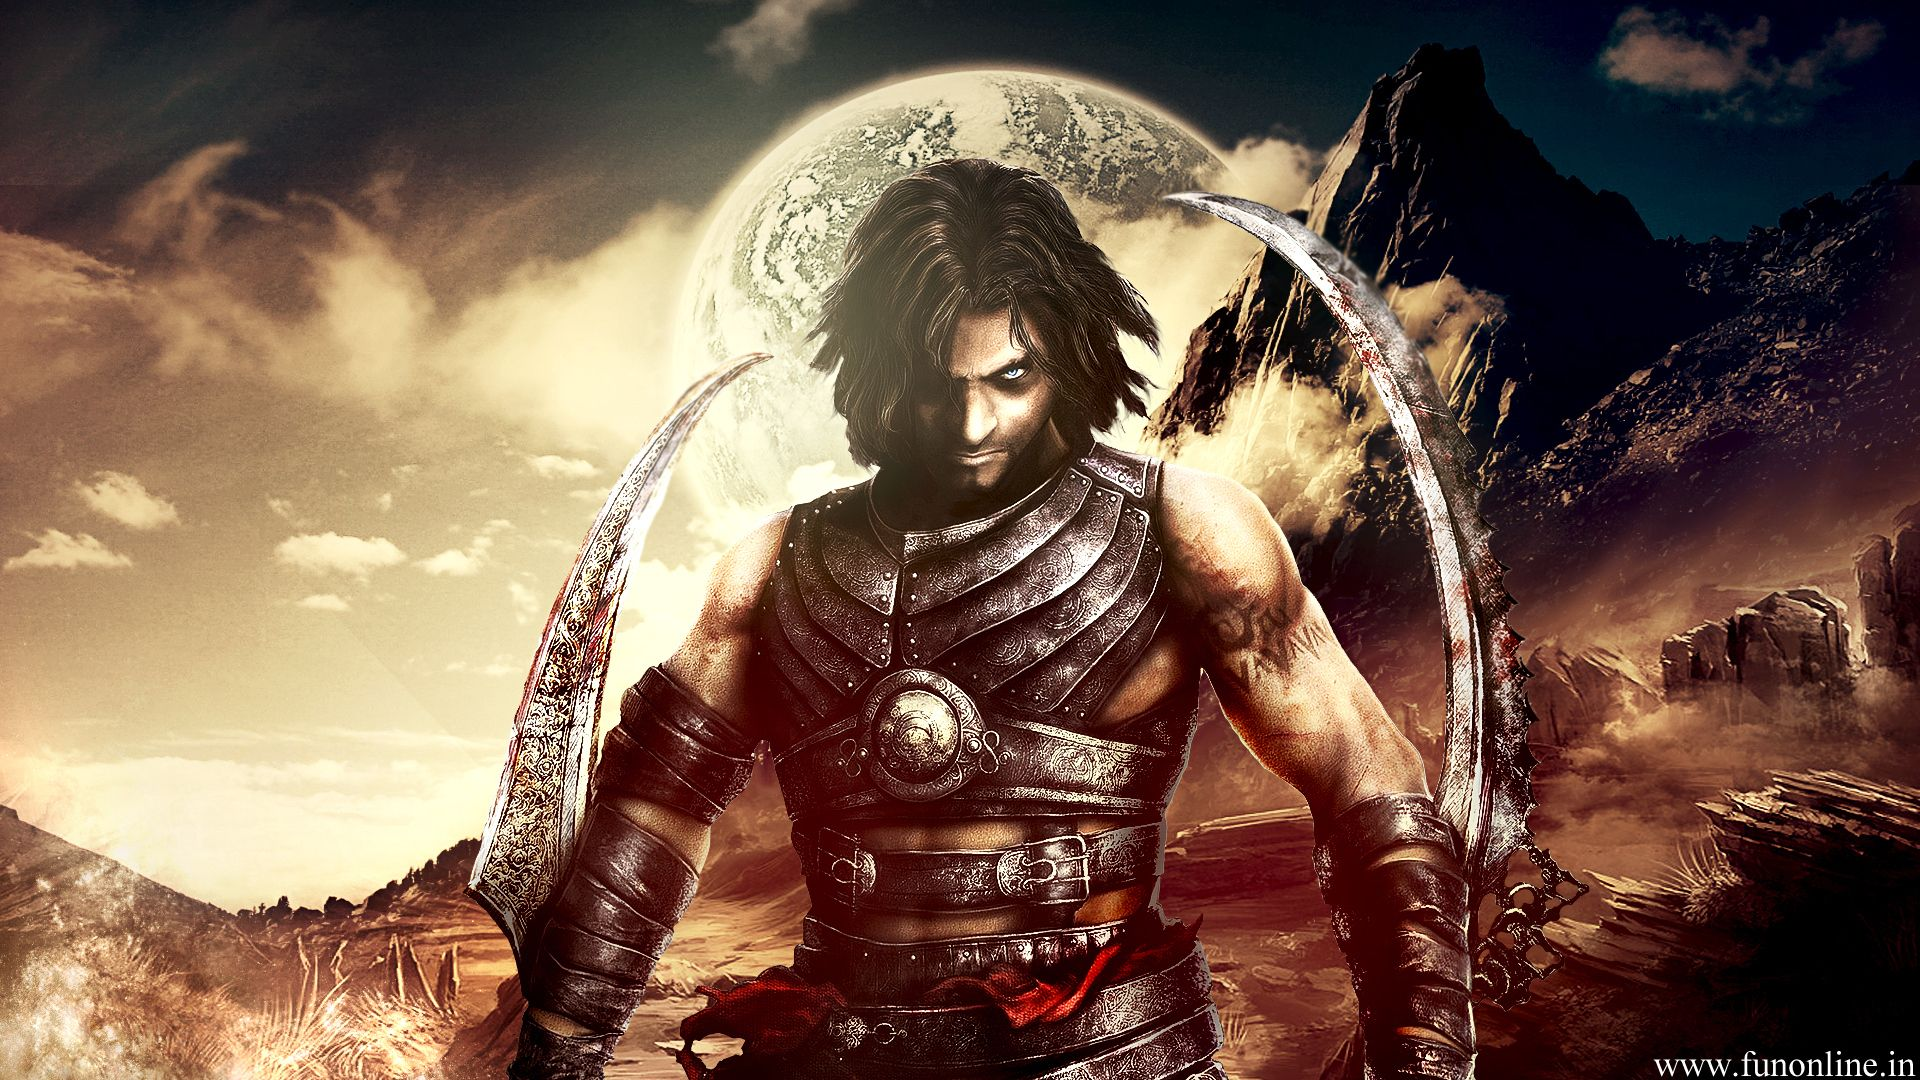 Tenoch Prince of persia, Warrior within, Persia